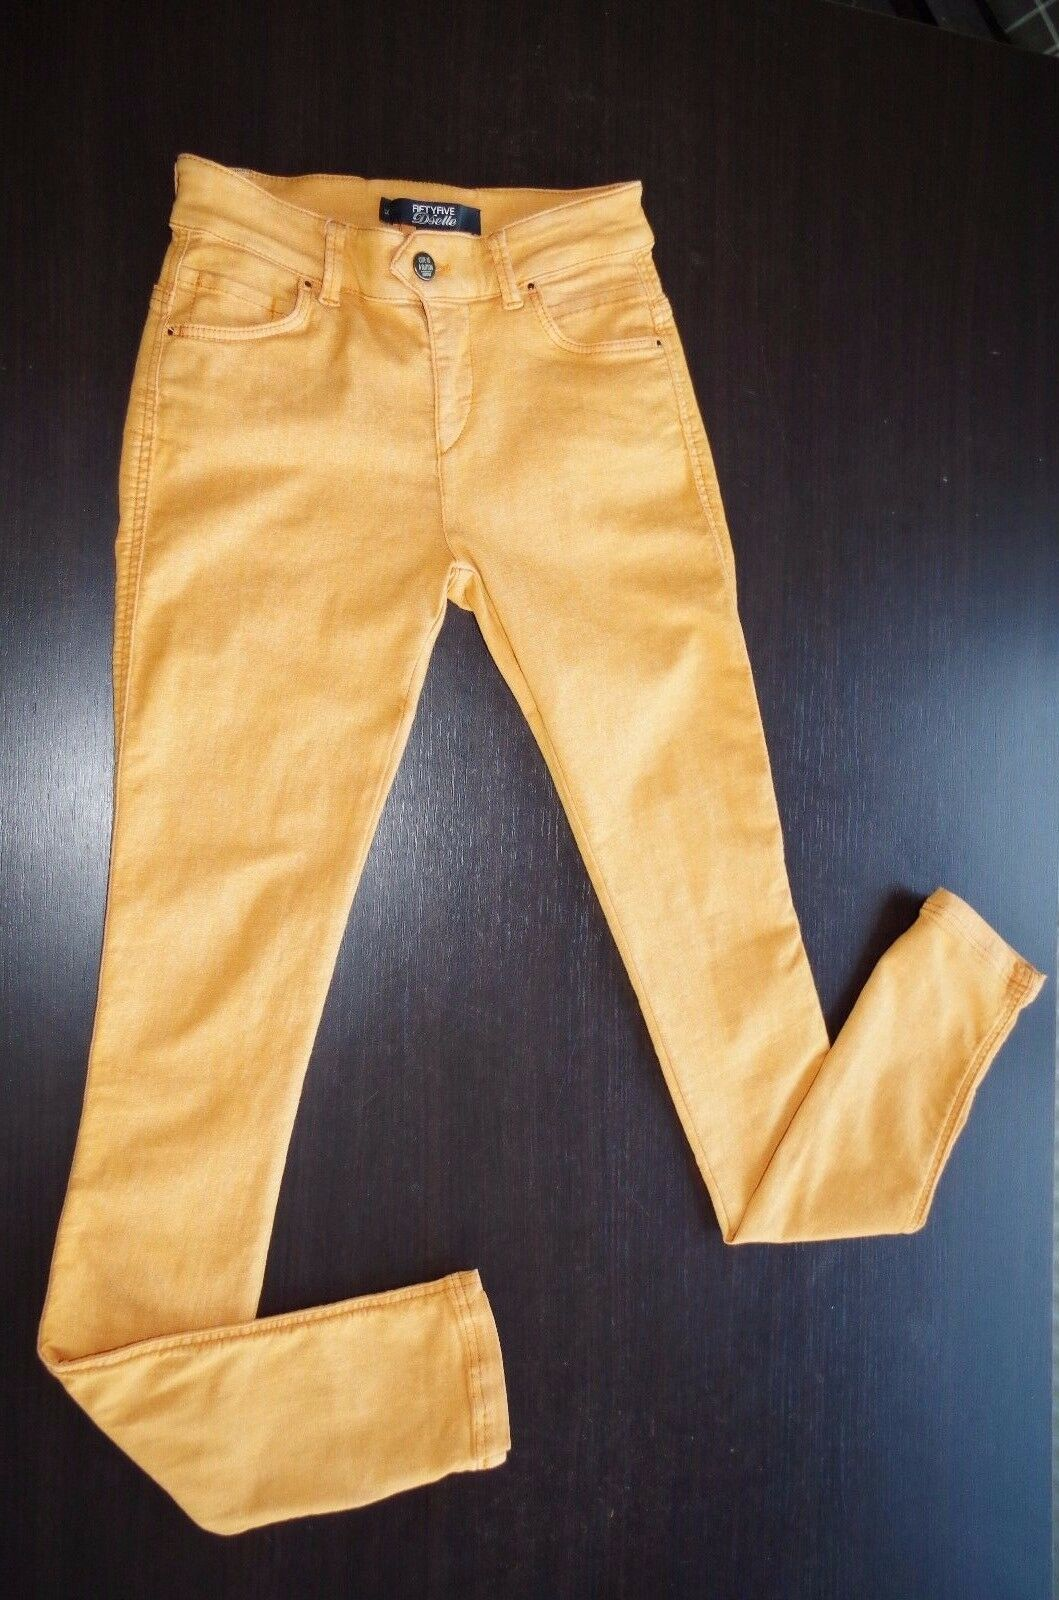 86 DIESEL sz W25 WOMENS DENIM PANTS JEANS SLIM SKINNY STRETCH RIPPED NEW orange